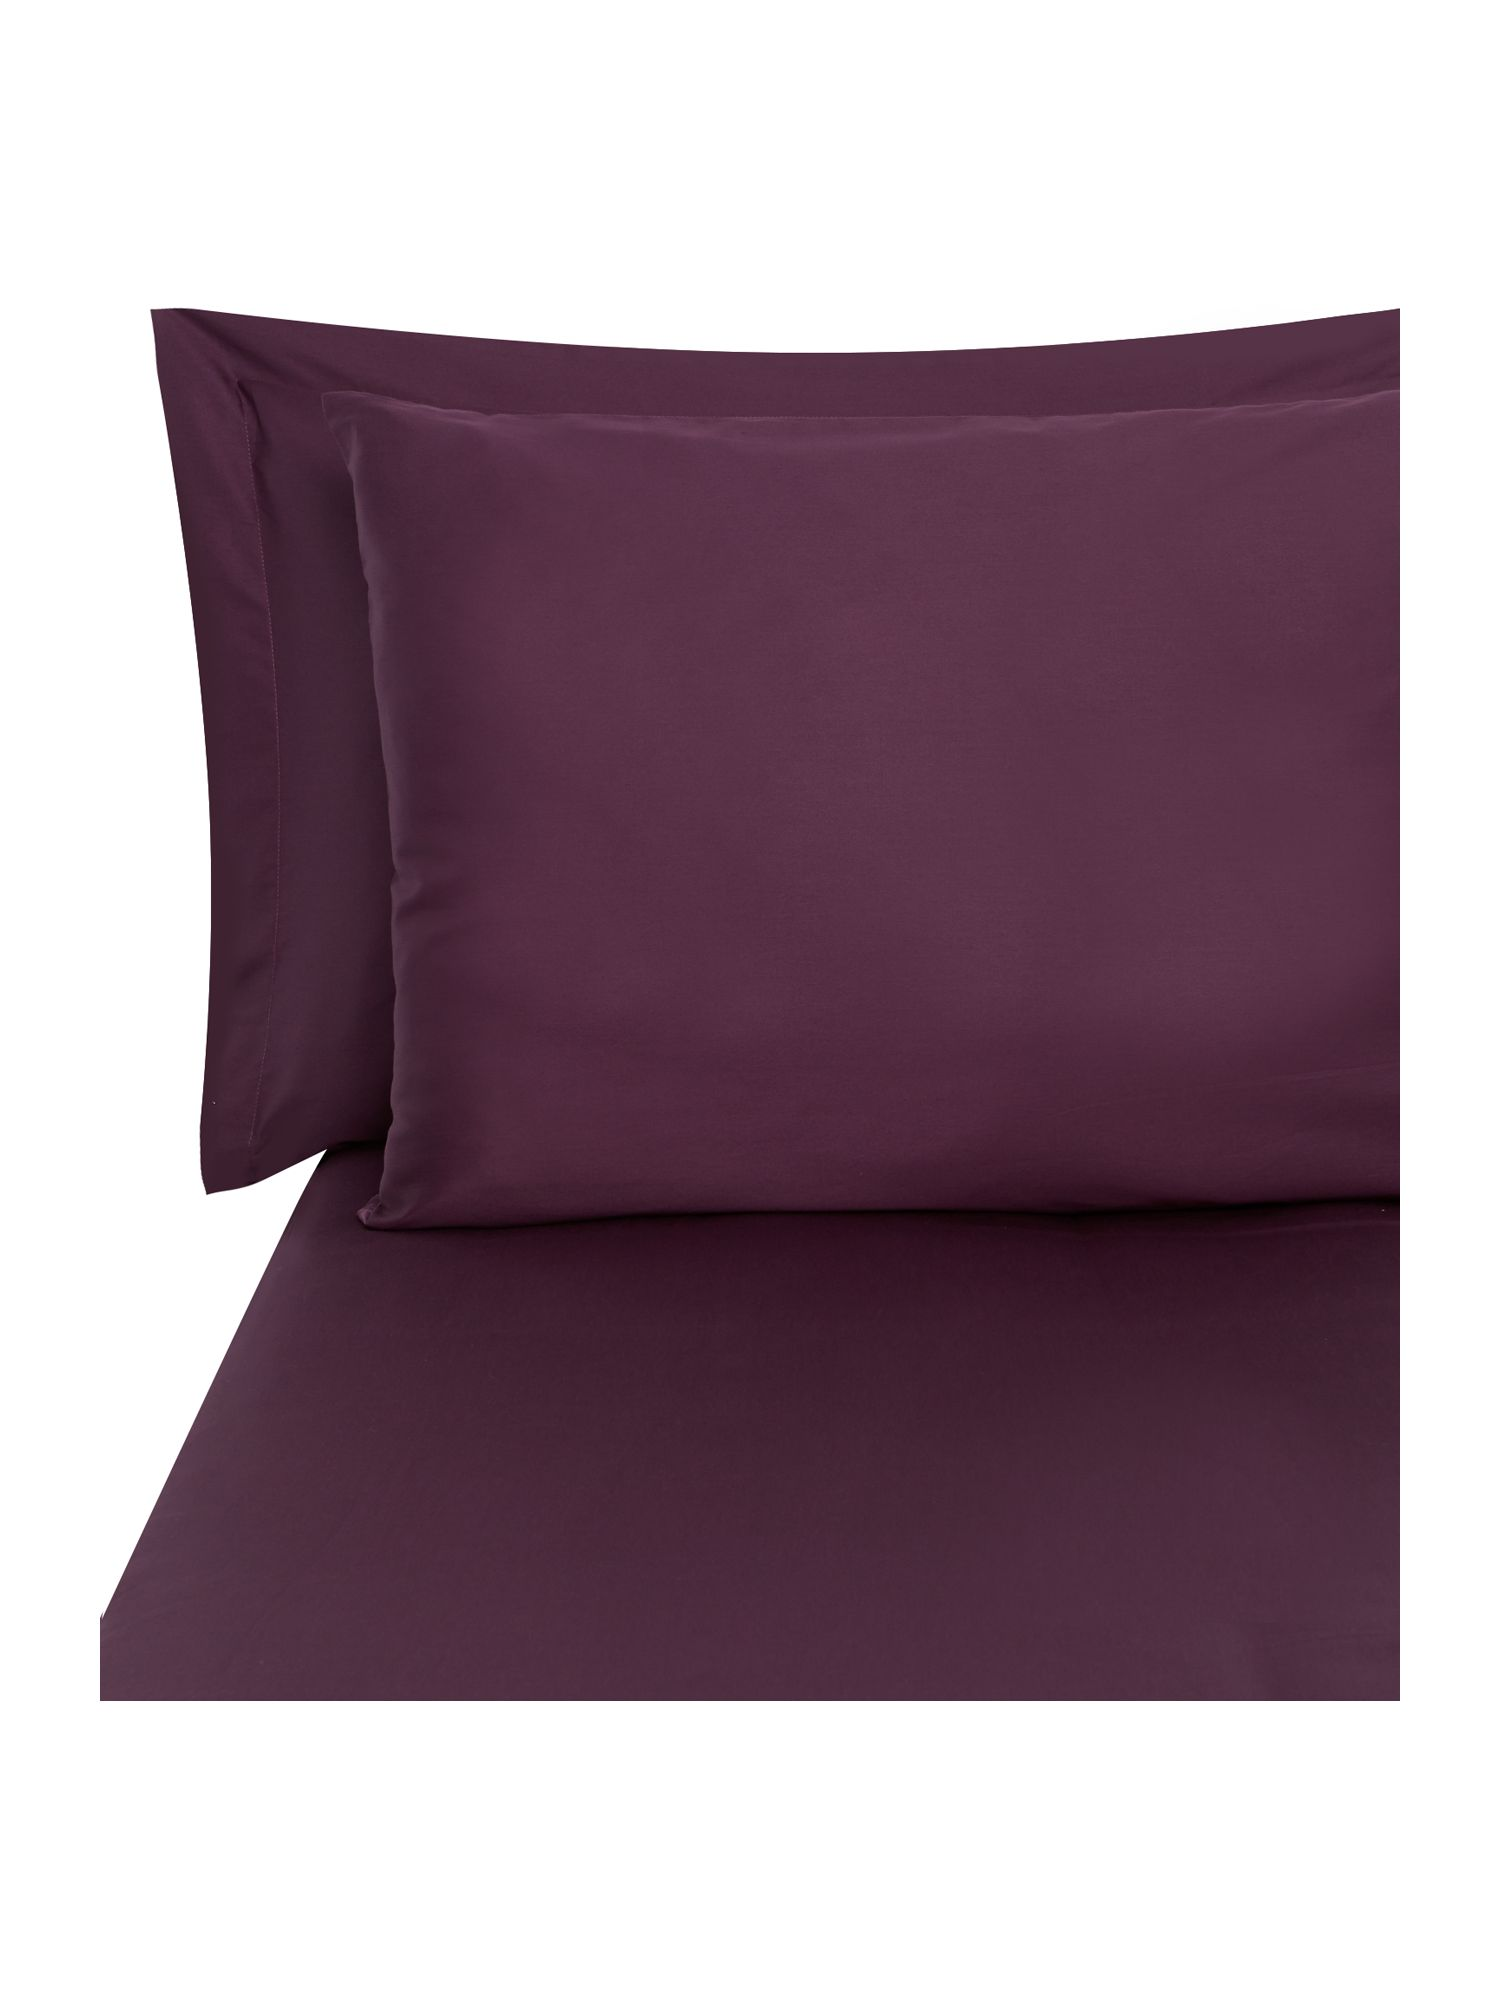 Amethyst fitted sheet king